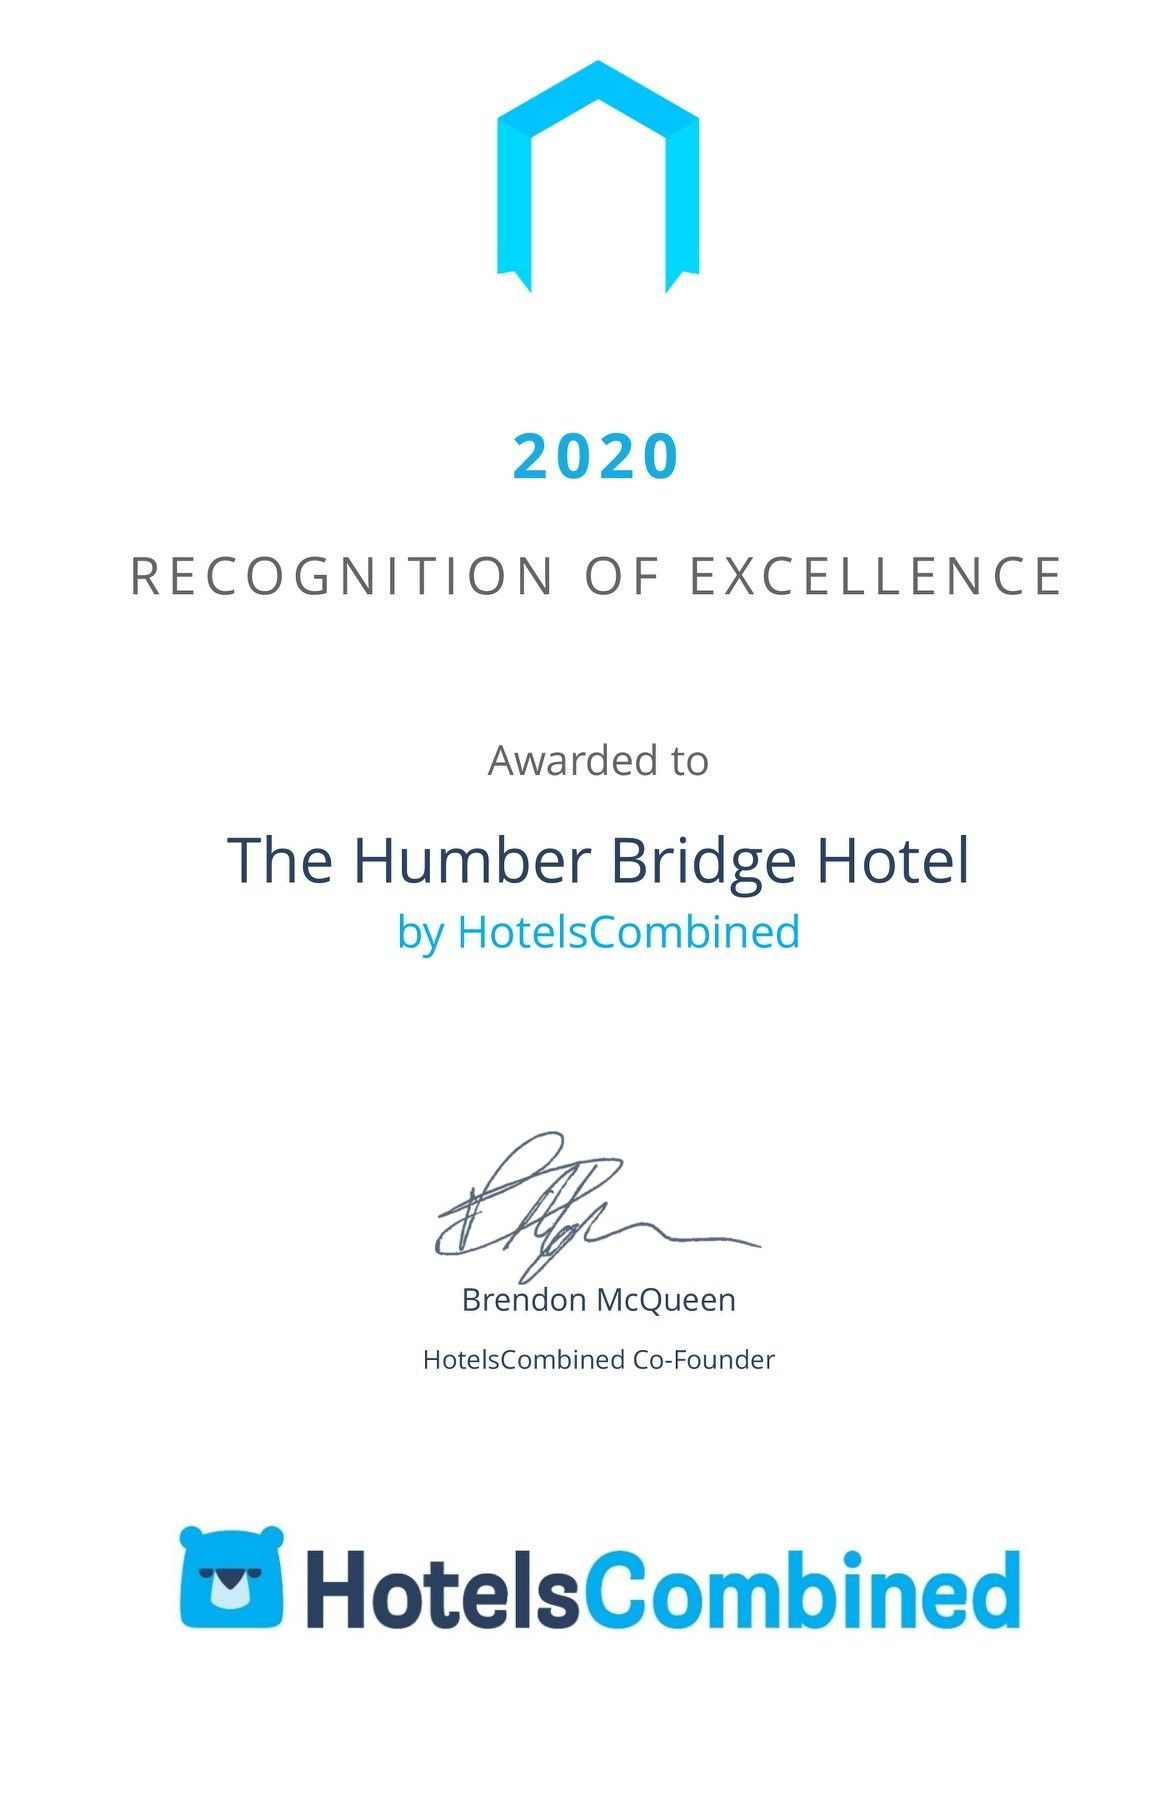 Rewarded by HotelsCombined - Recognition of Excellence regarding our customer reviews.